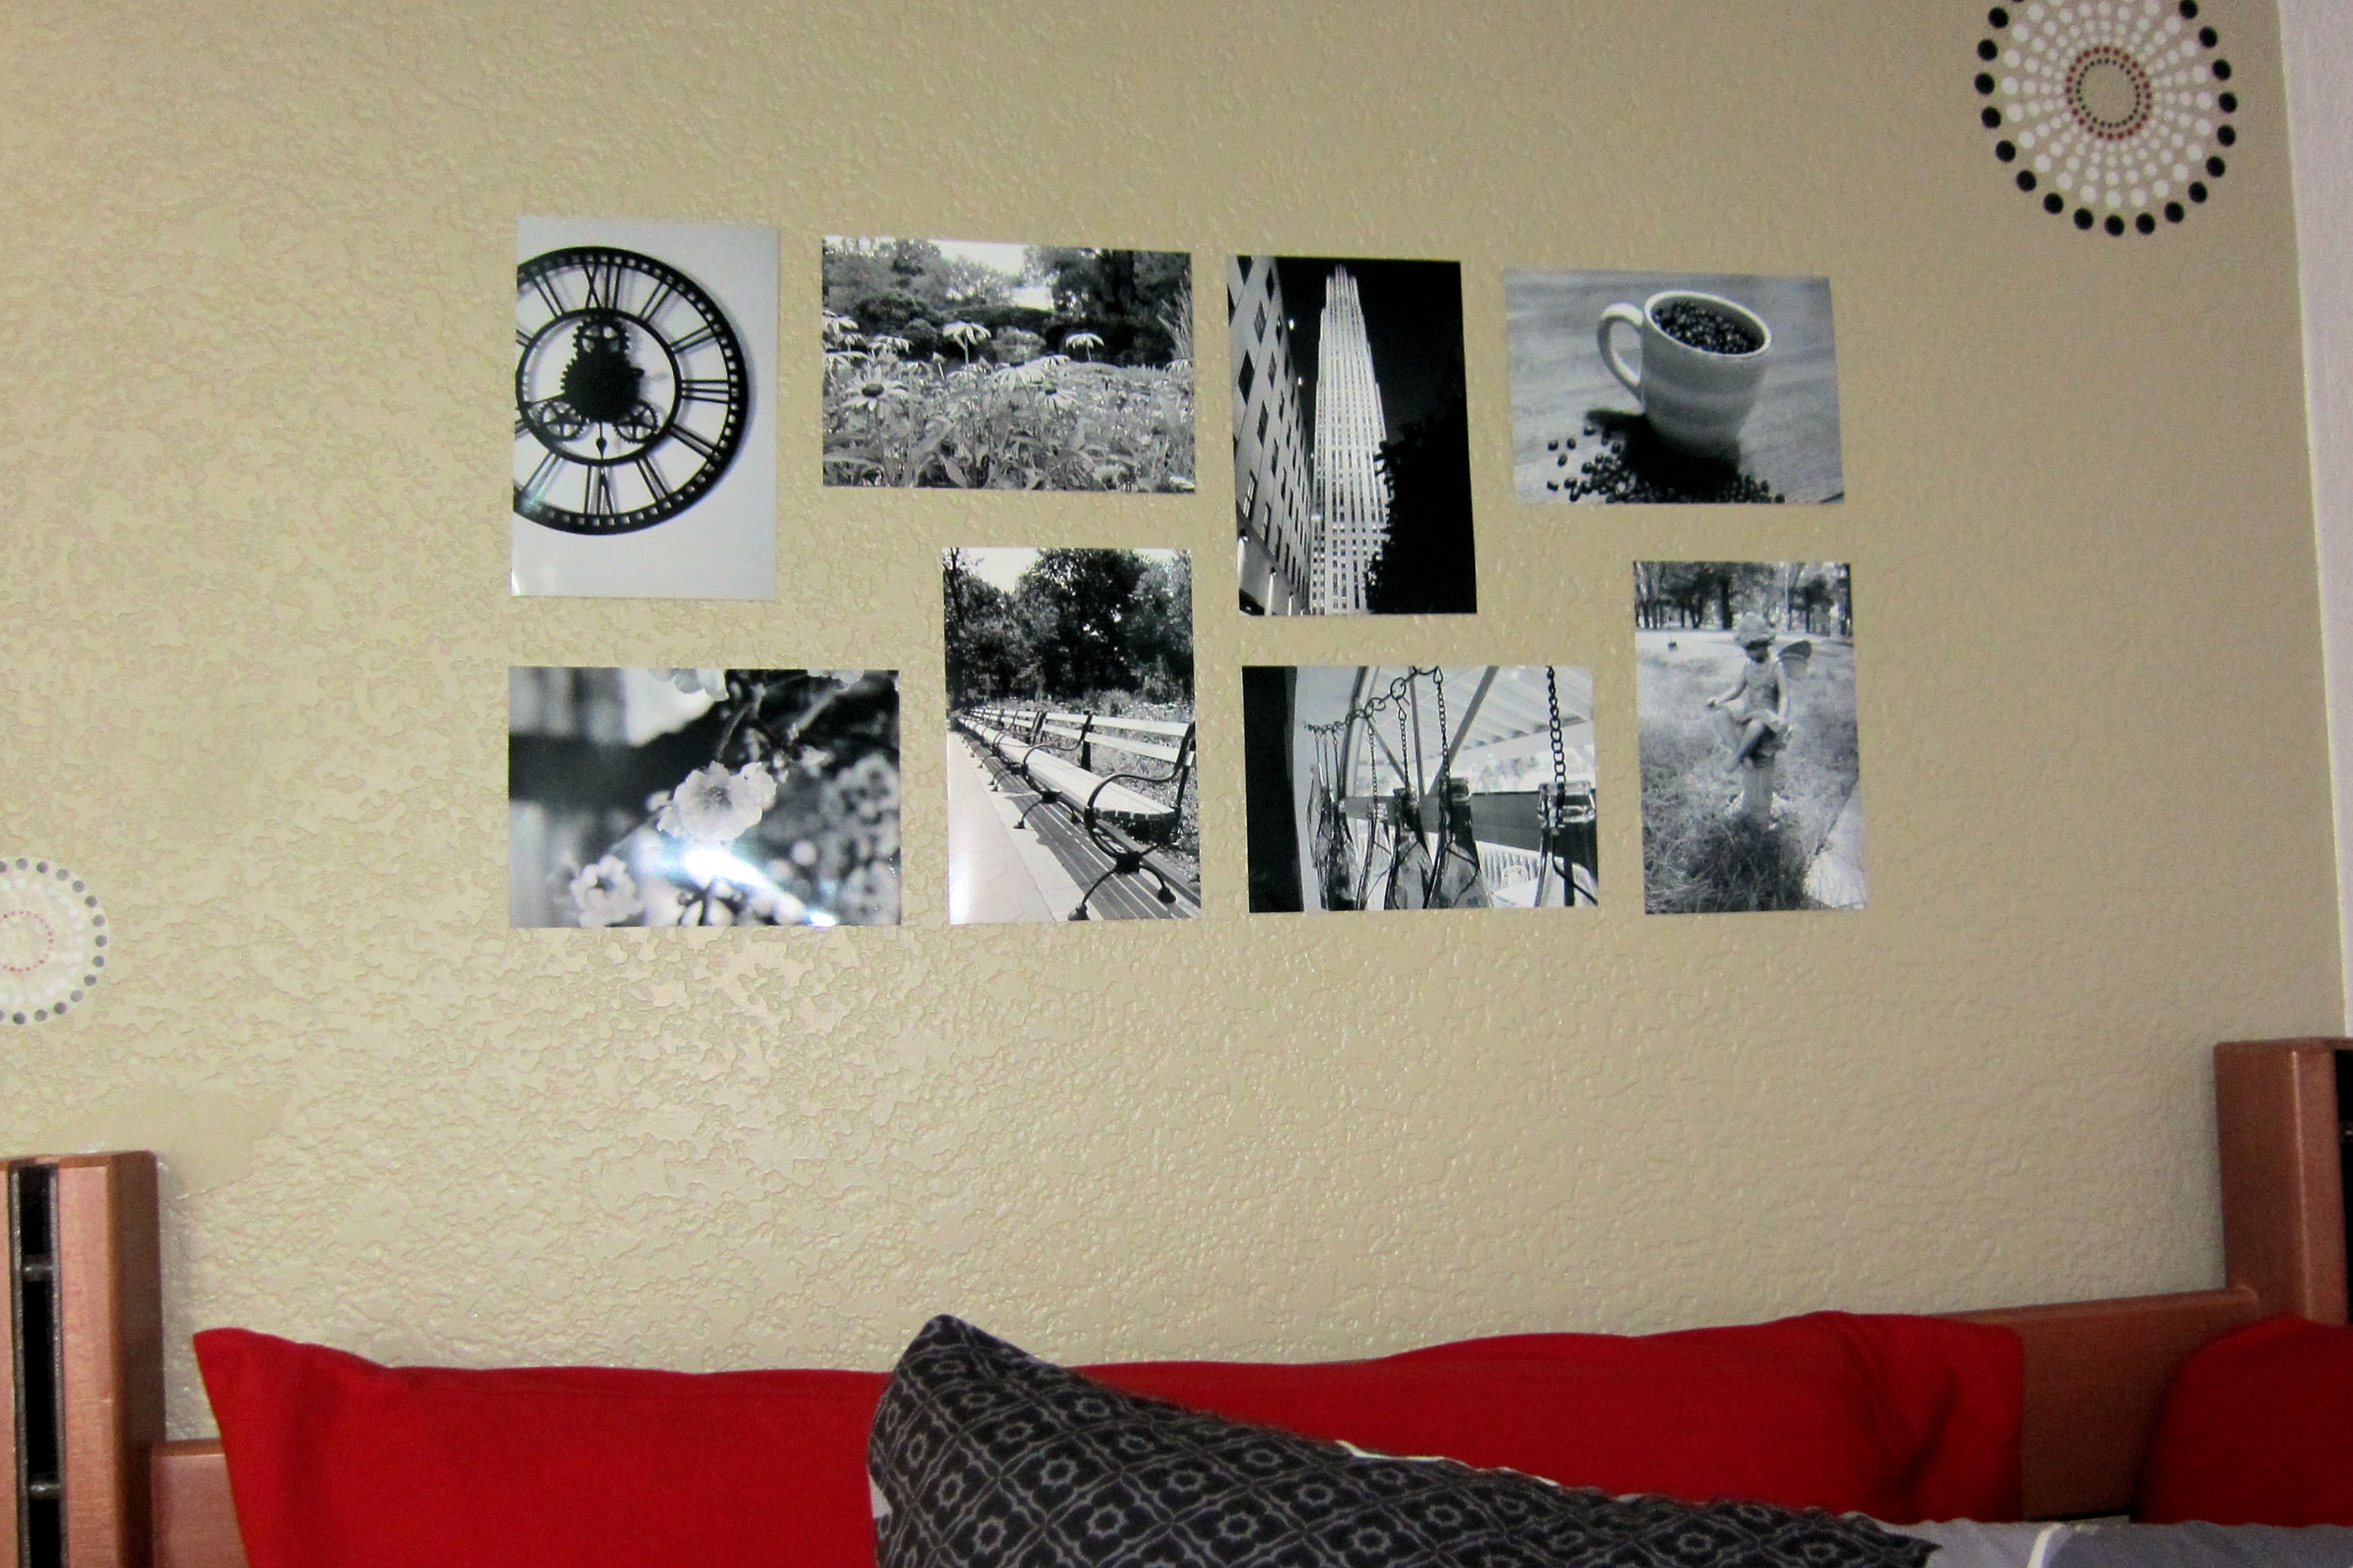 Wall Art: Top 10 Amazing Pictures Dorm Room Wall Art Dorm Room Within Most Current Canvas Wall Art For Dorm Rooms (View 6 of 15)